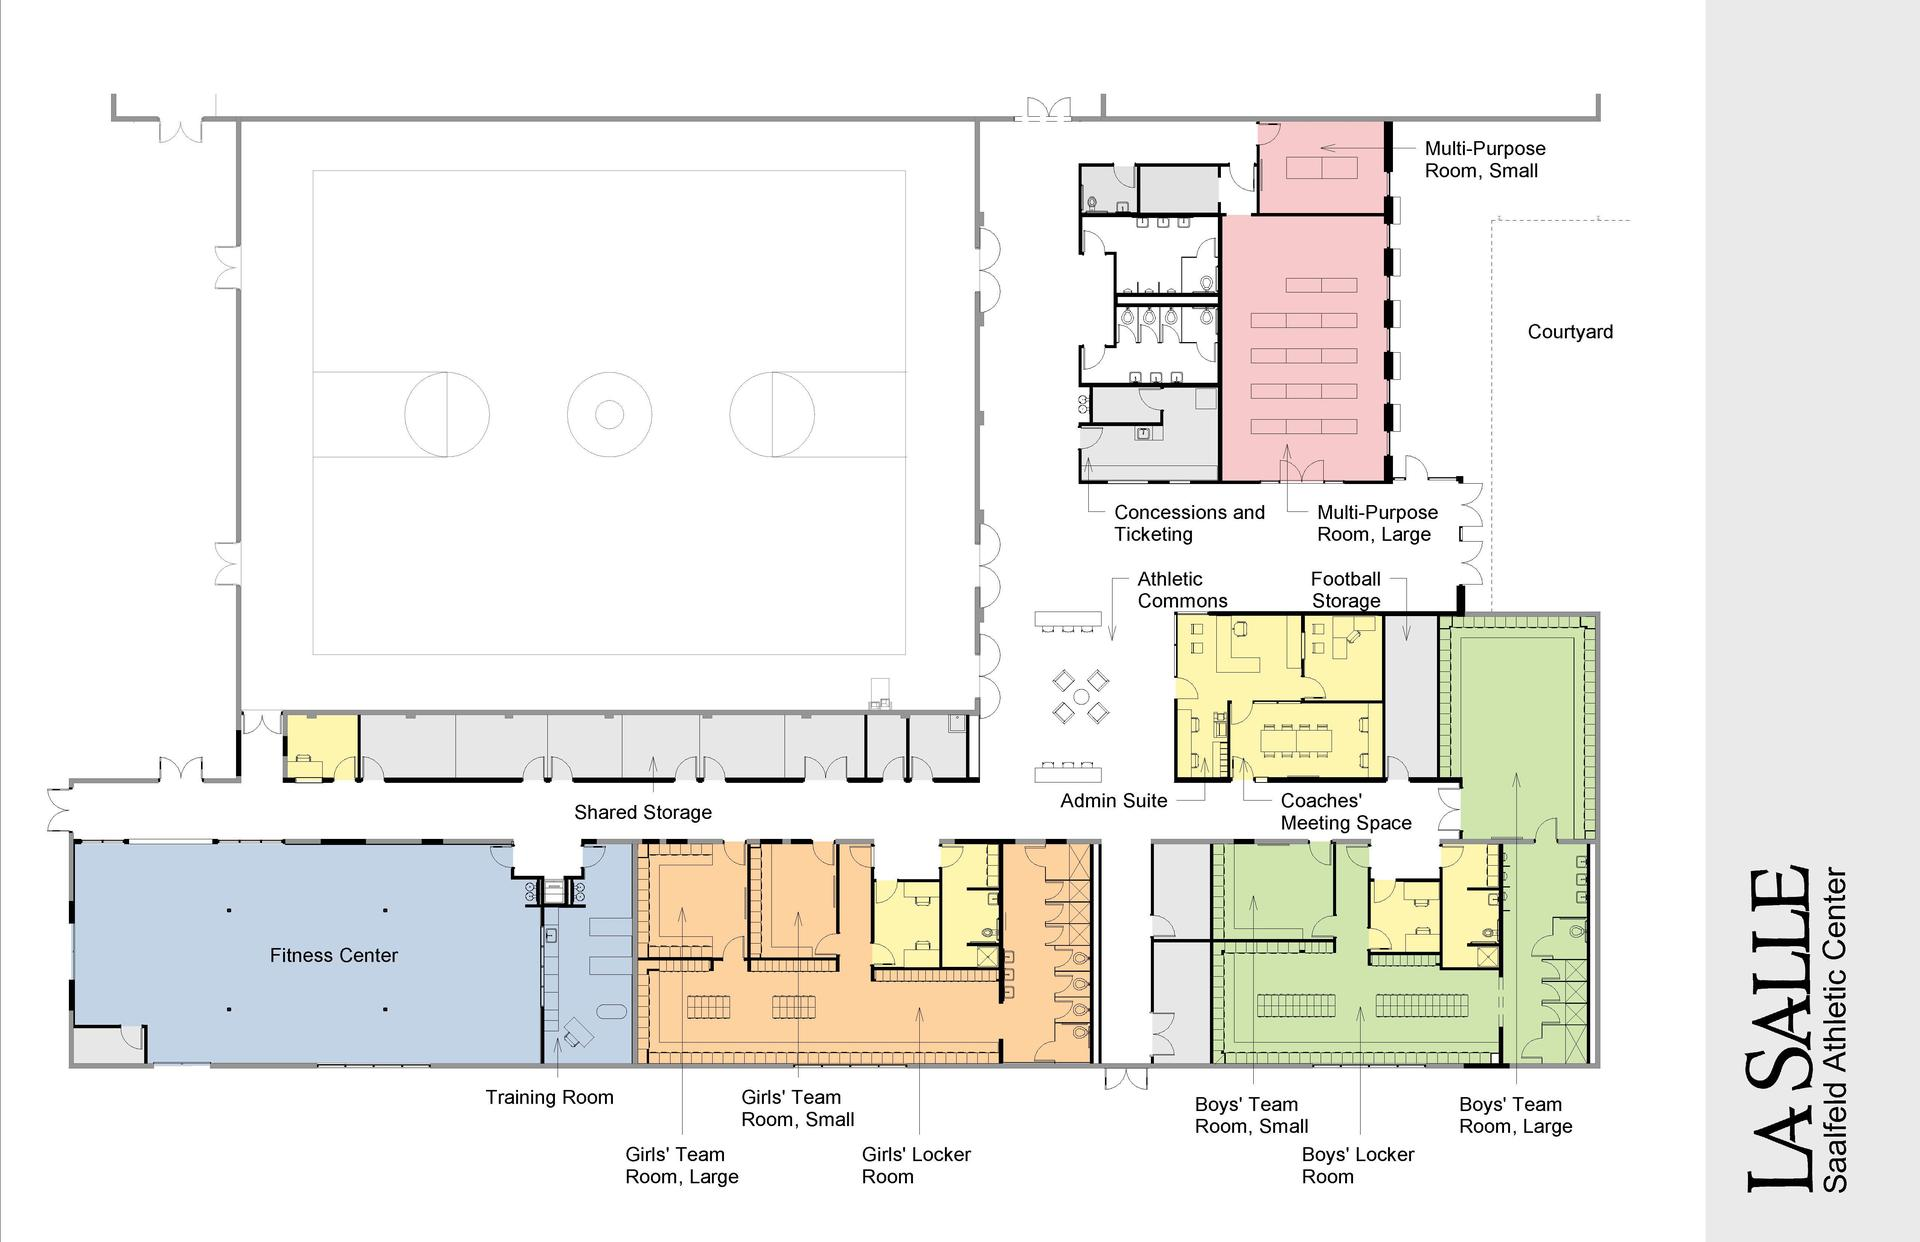 Saalfeld Athletic Center floor plan